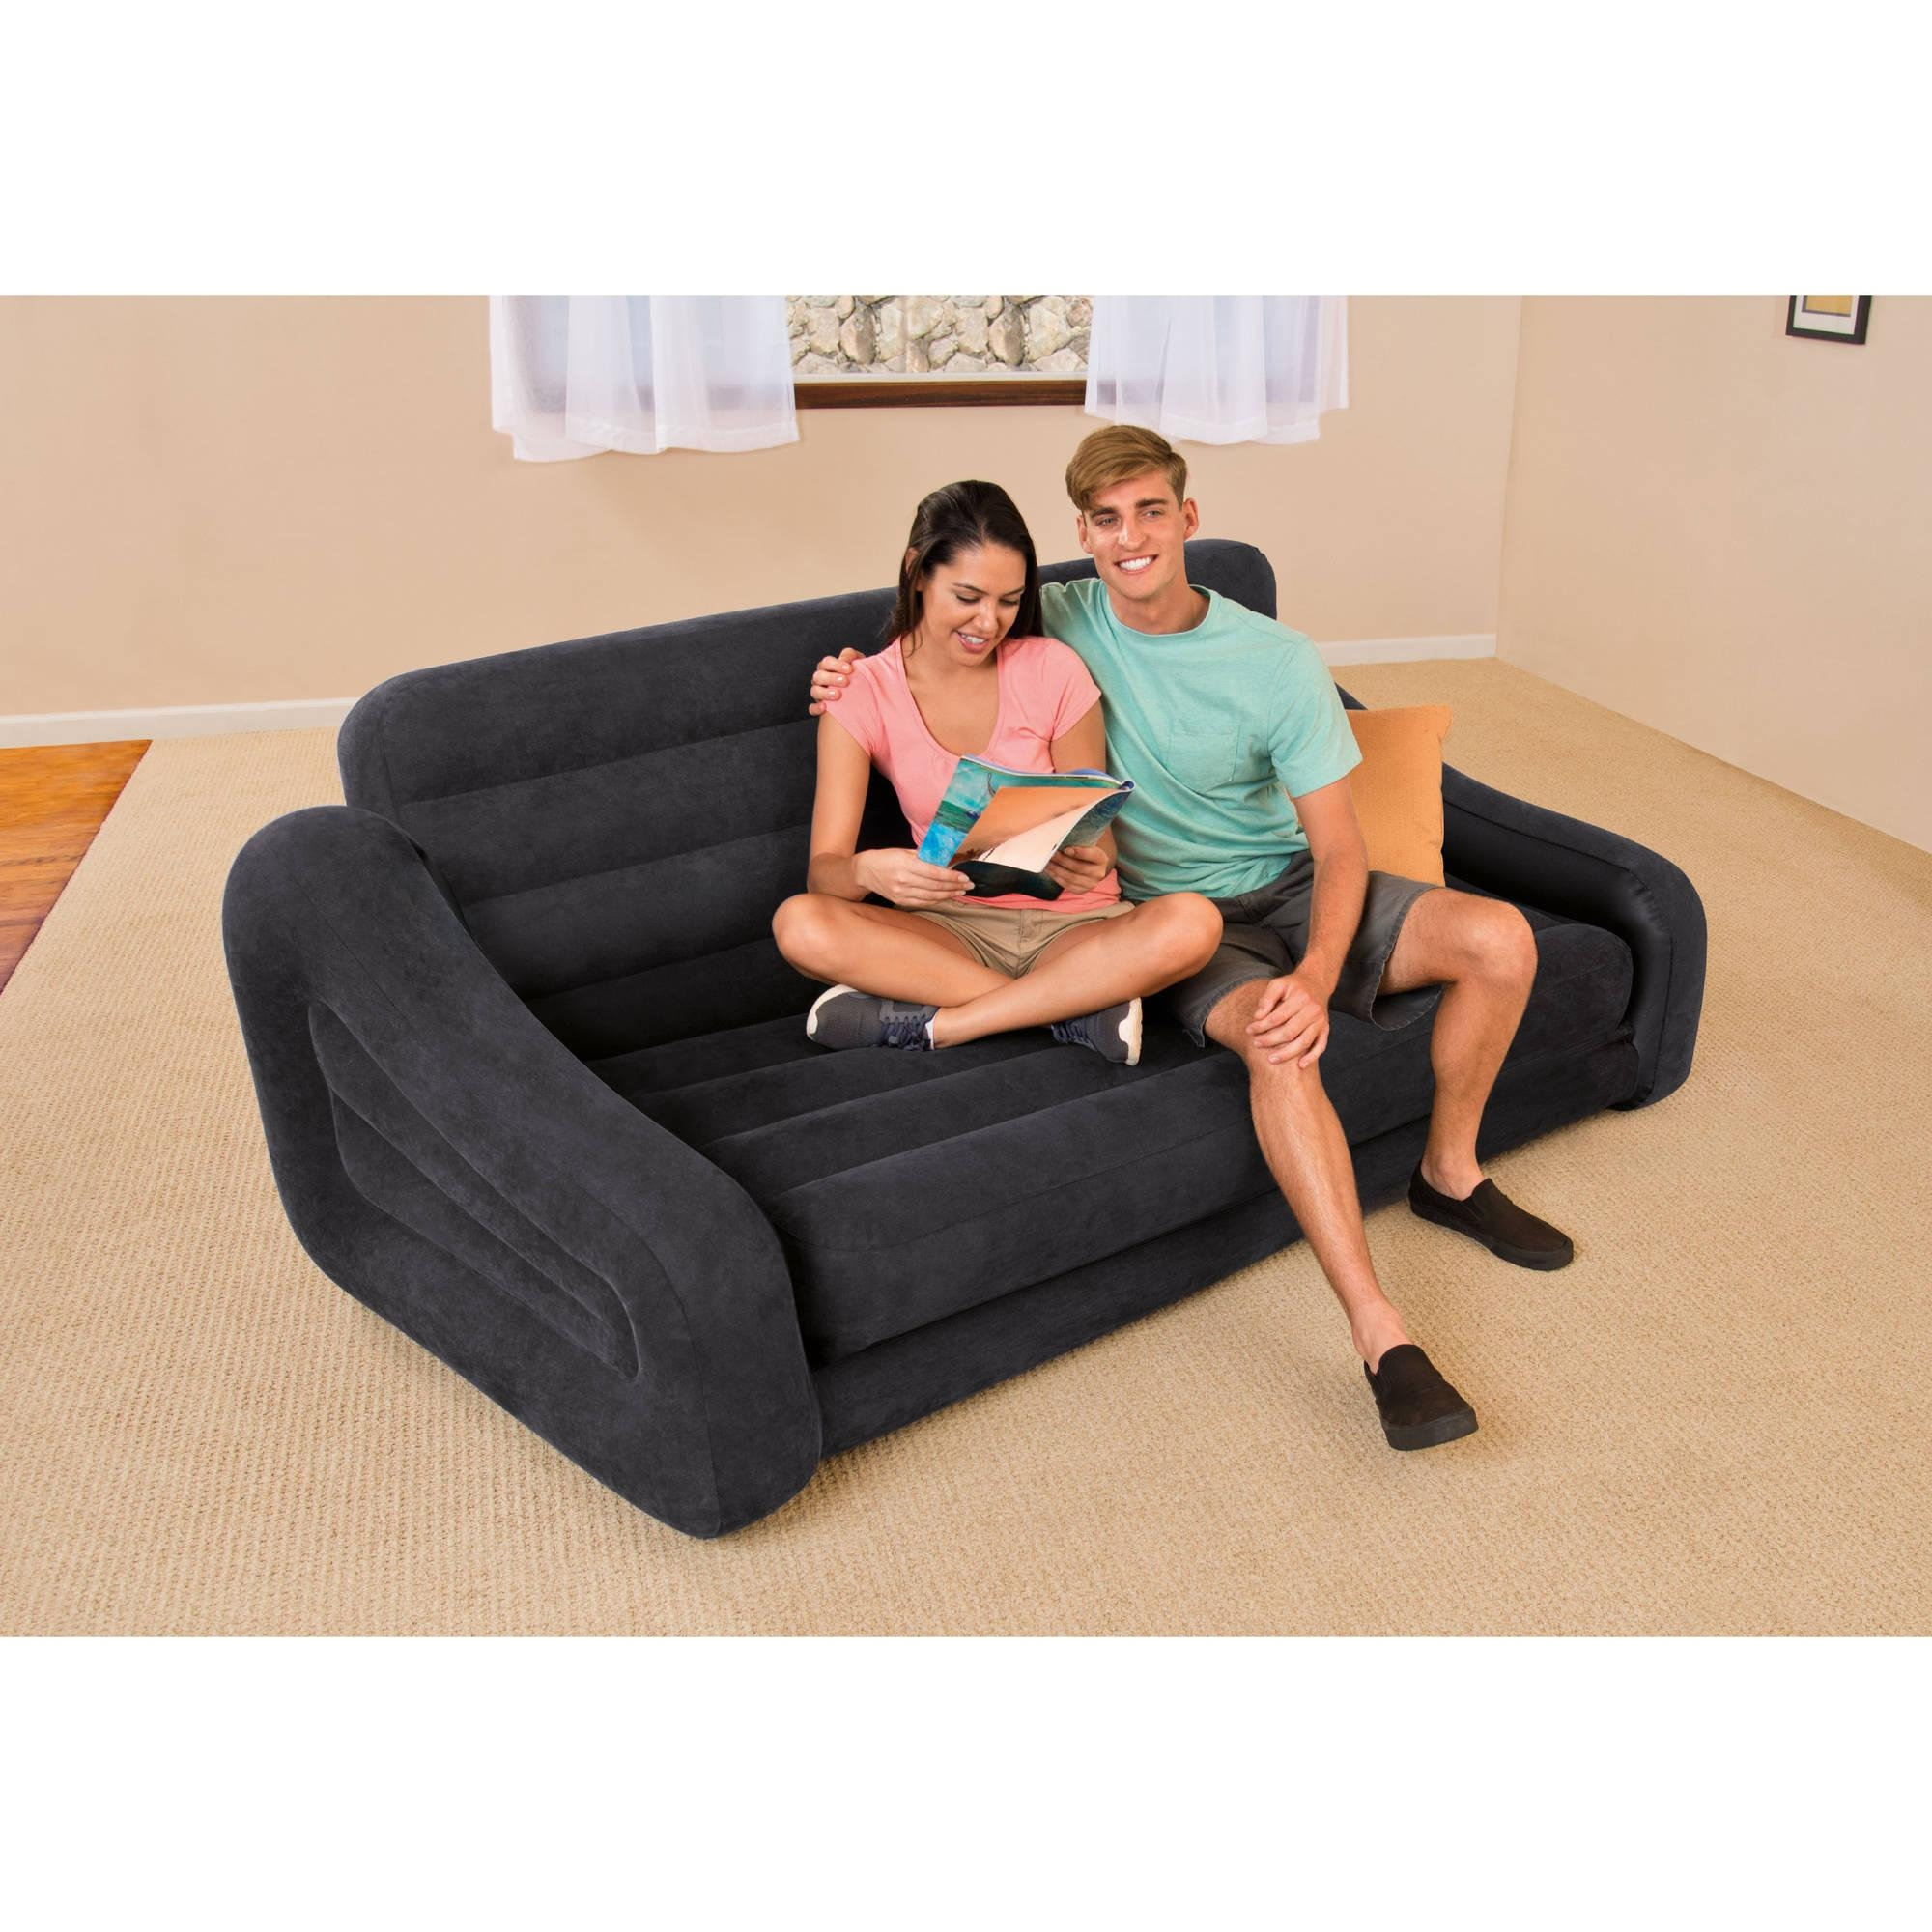 Intex Queen Inflatable Pull Out Sofa Bed – Walmart Regarding Inflatable Pull Out Sofas (Image 16 of 20)